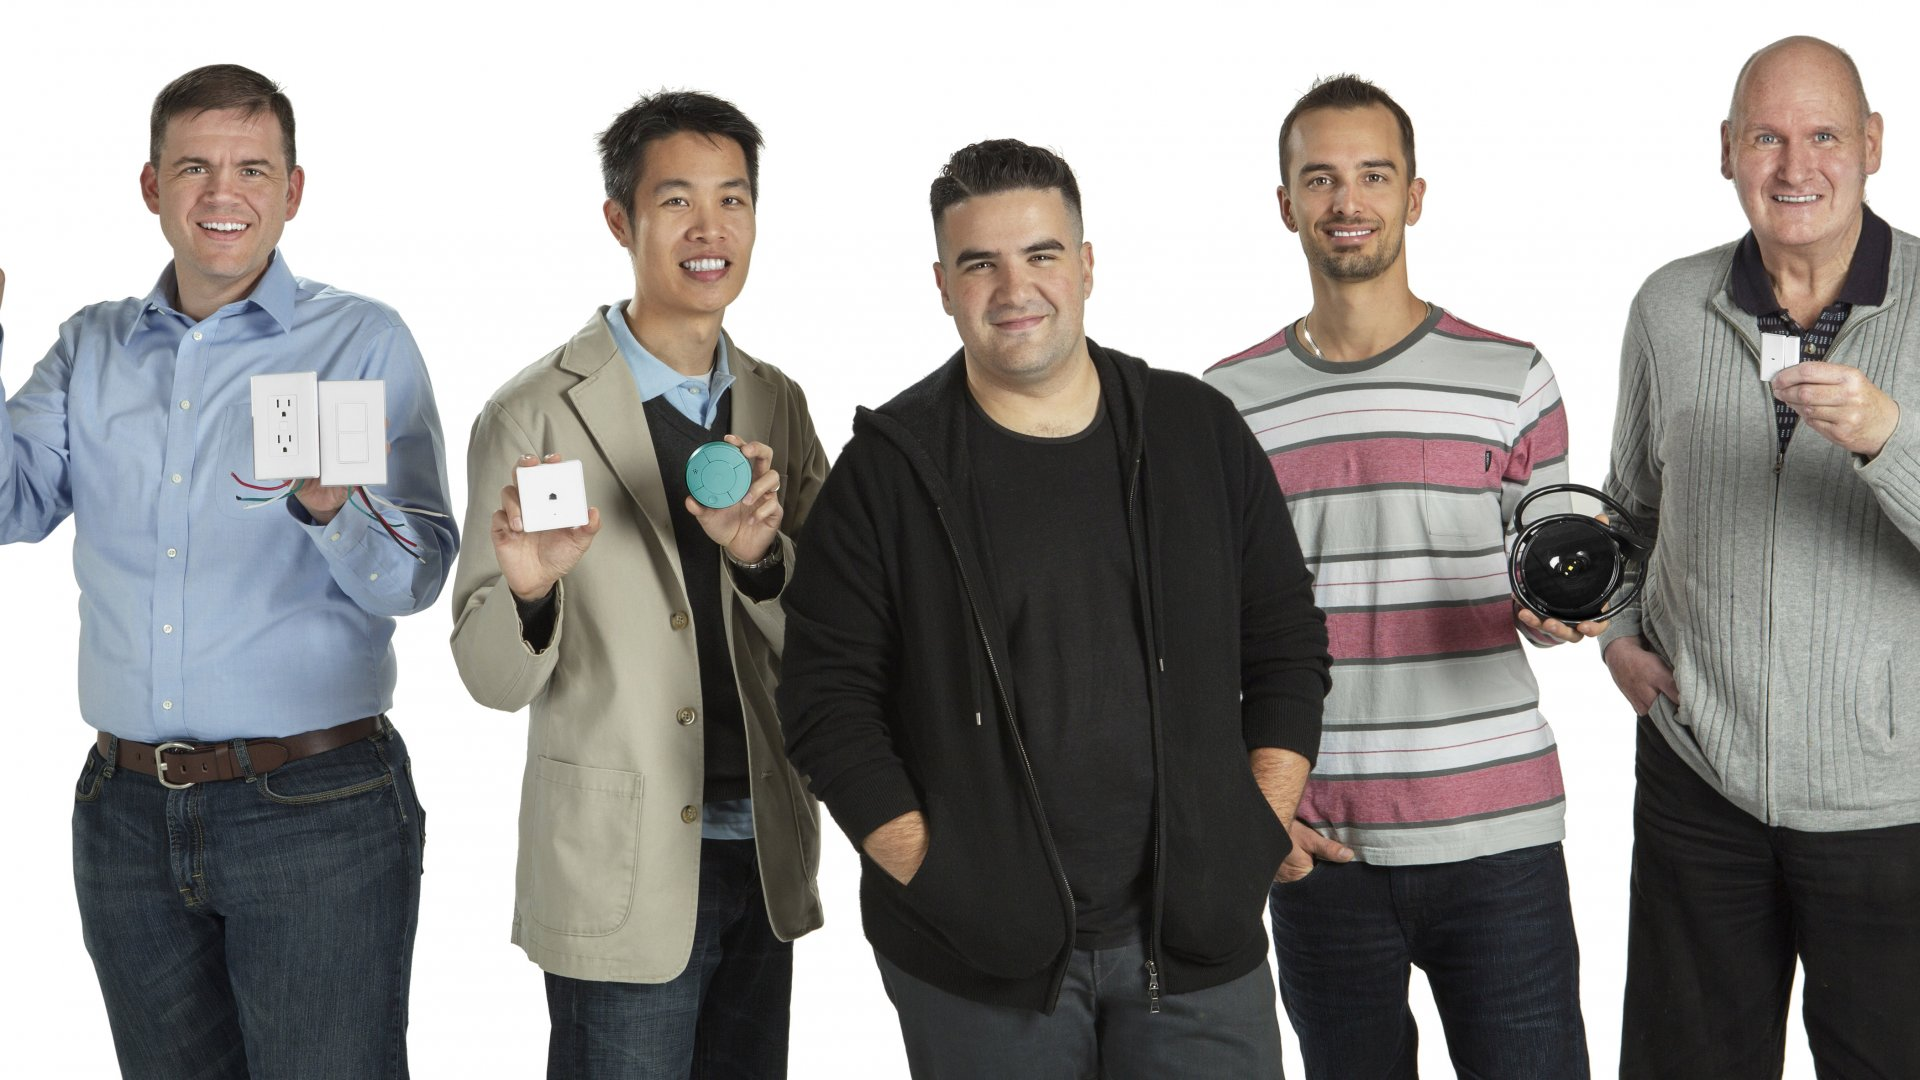 Ben Kaufman, founder and former CEO of Quirky, poses with inventors whose products were tweaked by other Quirky users before being prototyped and produced with help from the company.